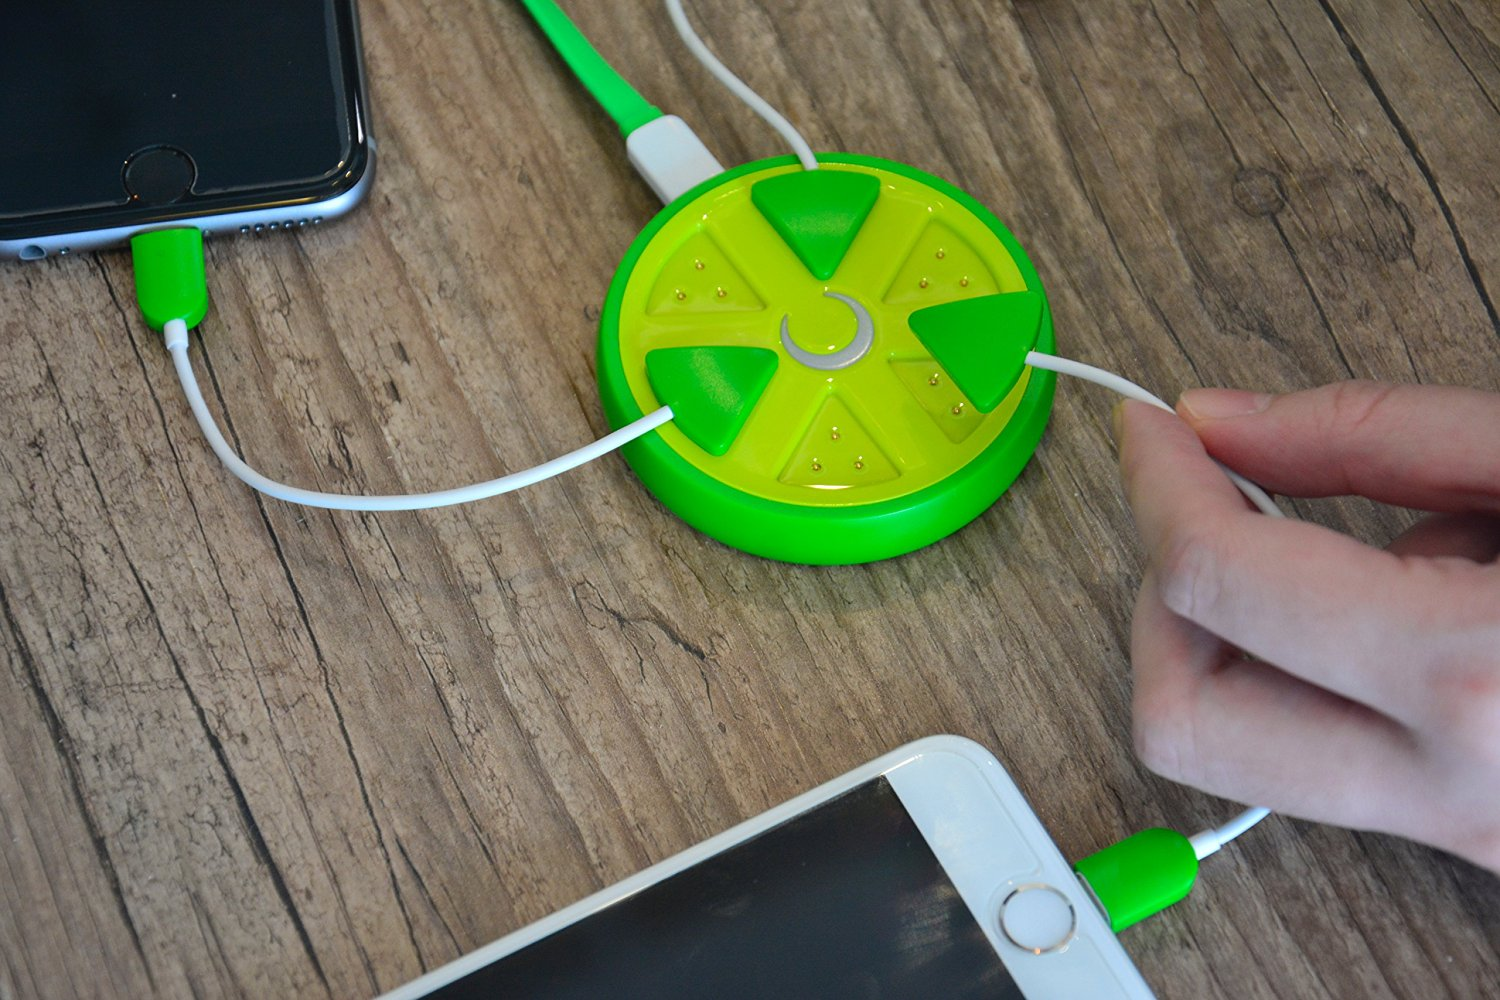 ARION Innovative Magnetic Induction Charger Hub with 3 Magnetic charging cables ( 2 Lightning Connector and 1 Micro Connector) and 1 USB Charging cable for Android and iPhone Device - Green